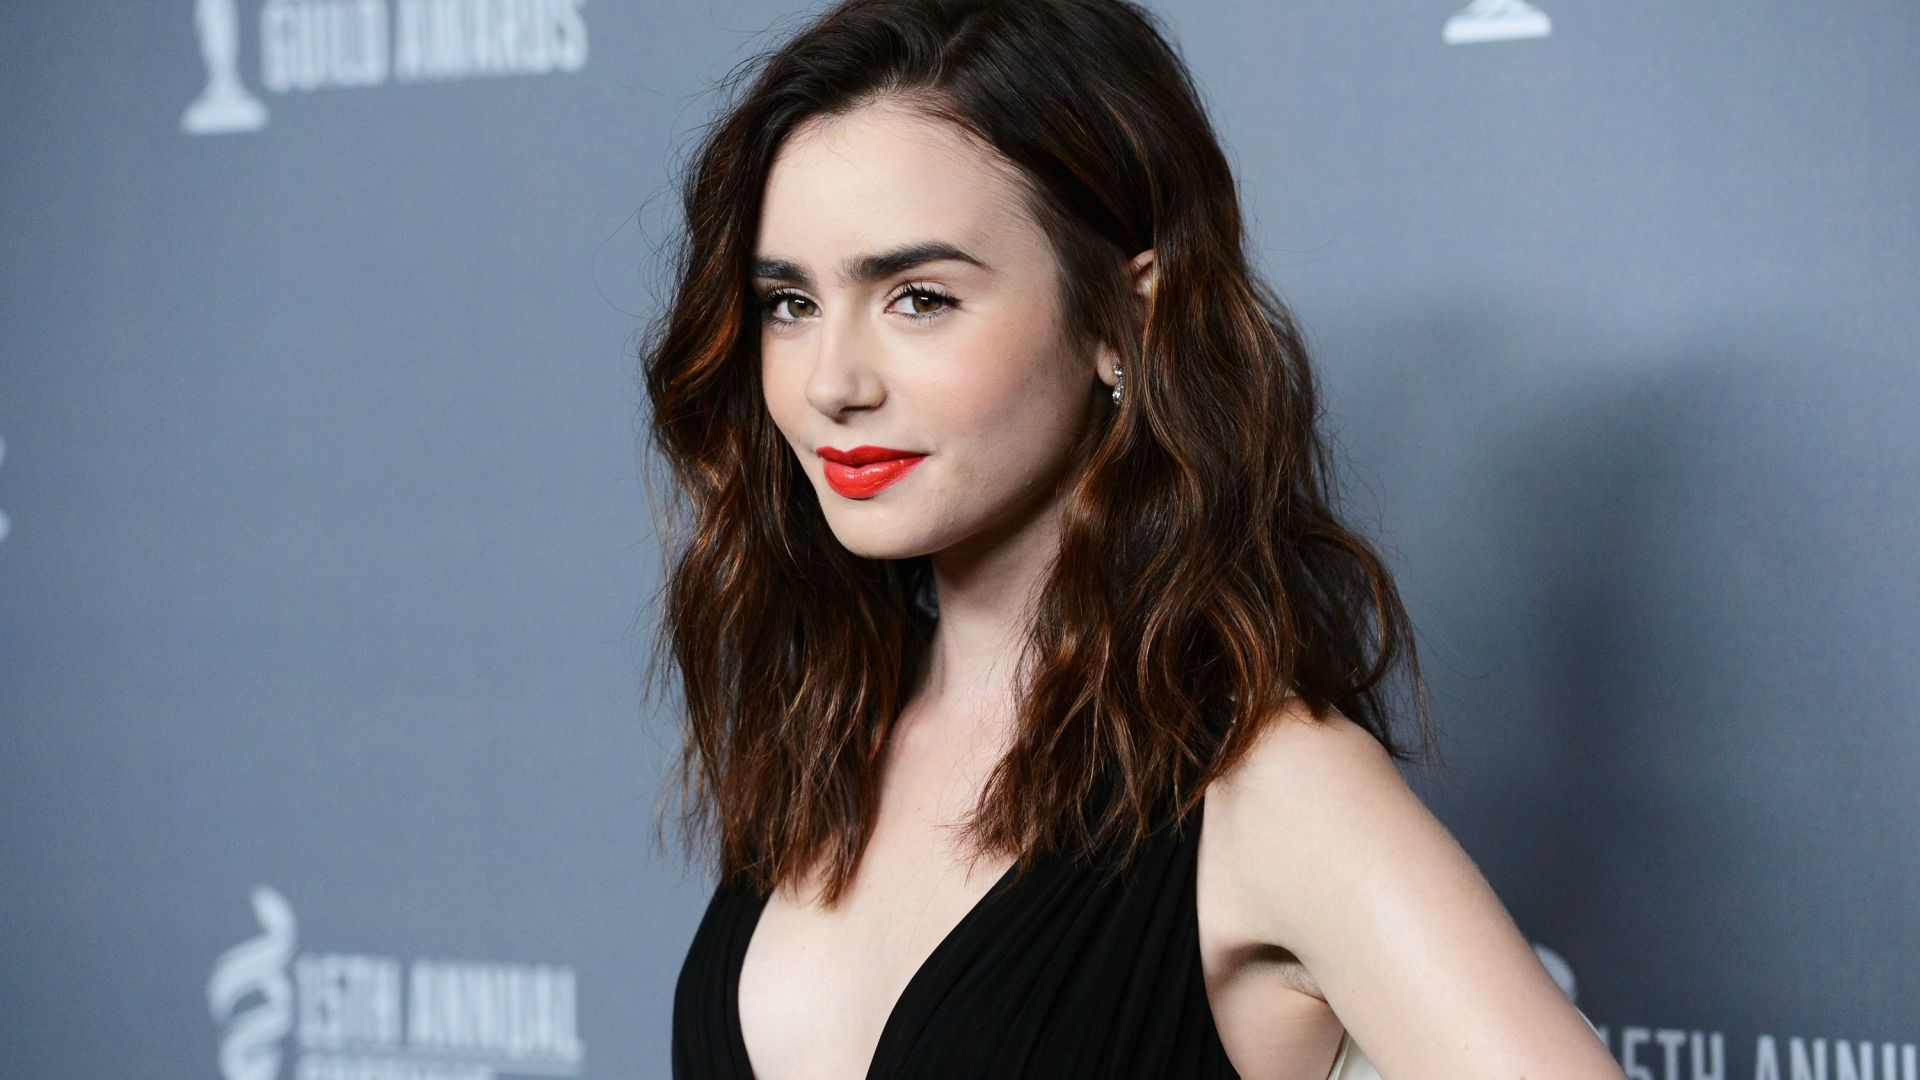 Wallpaper Beautiful, Lily Collins, red lipstick, celebrity